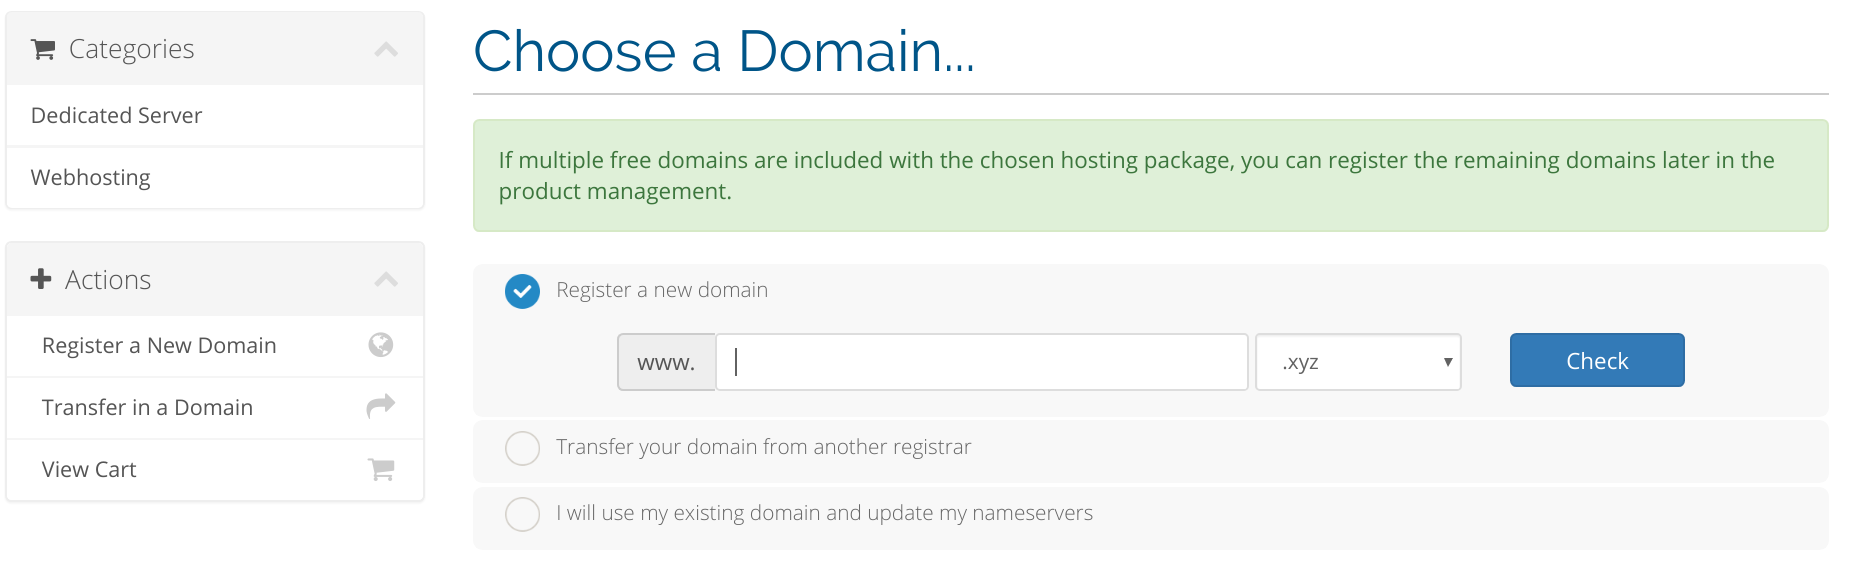 Template Changes (optional) - Multiple Free Domains - WHMCS